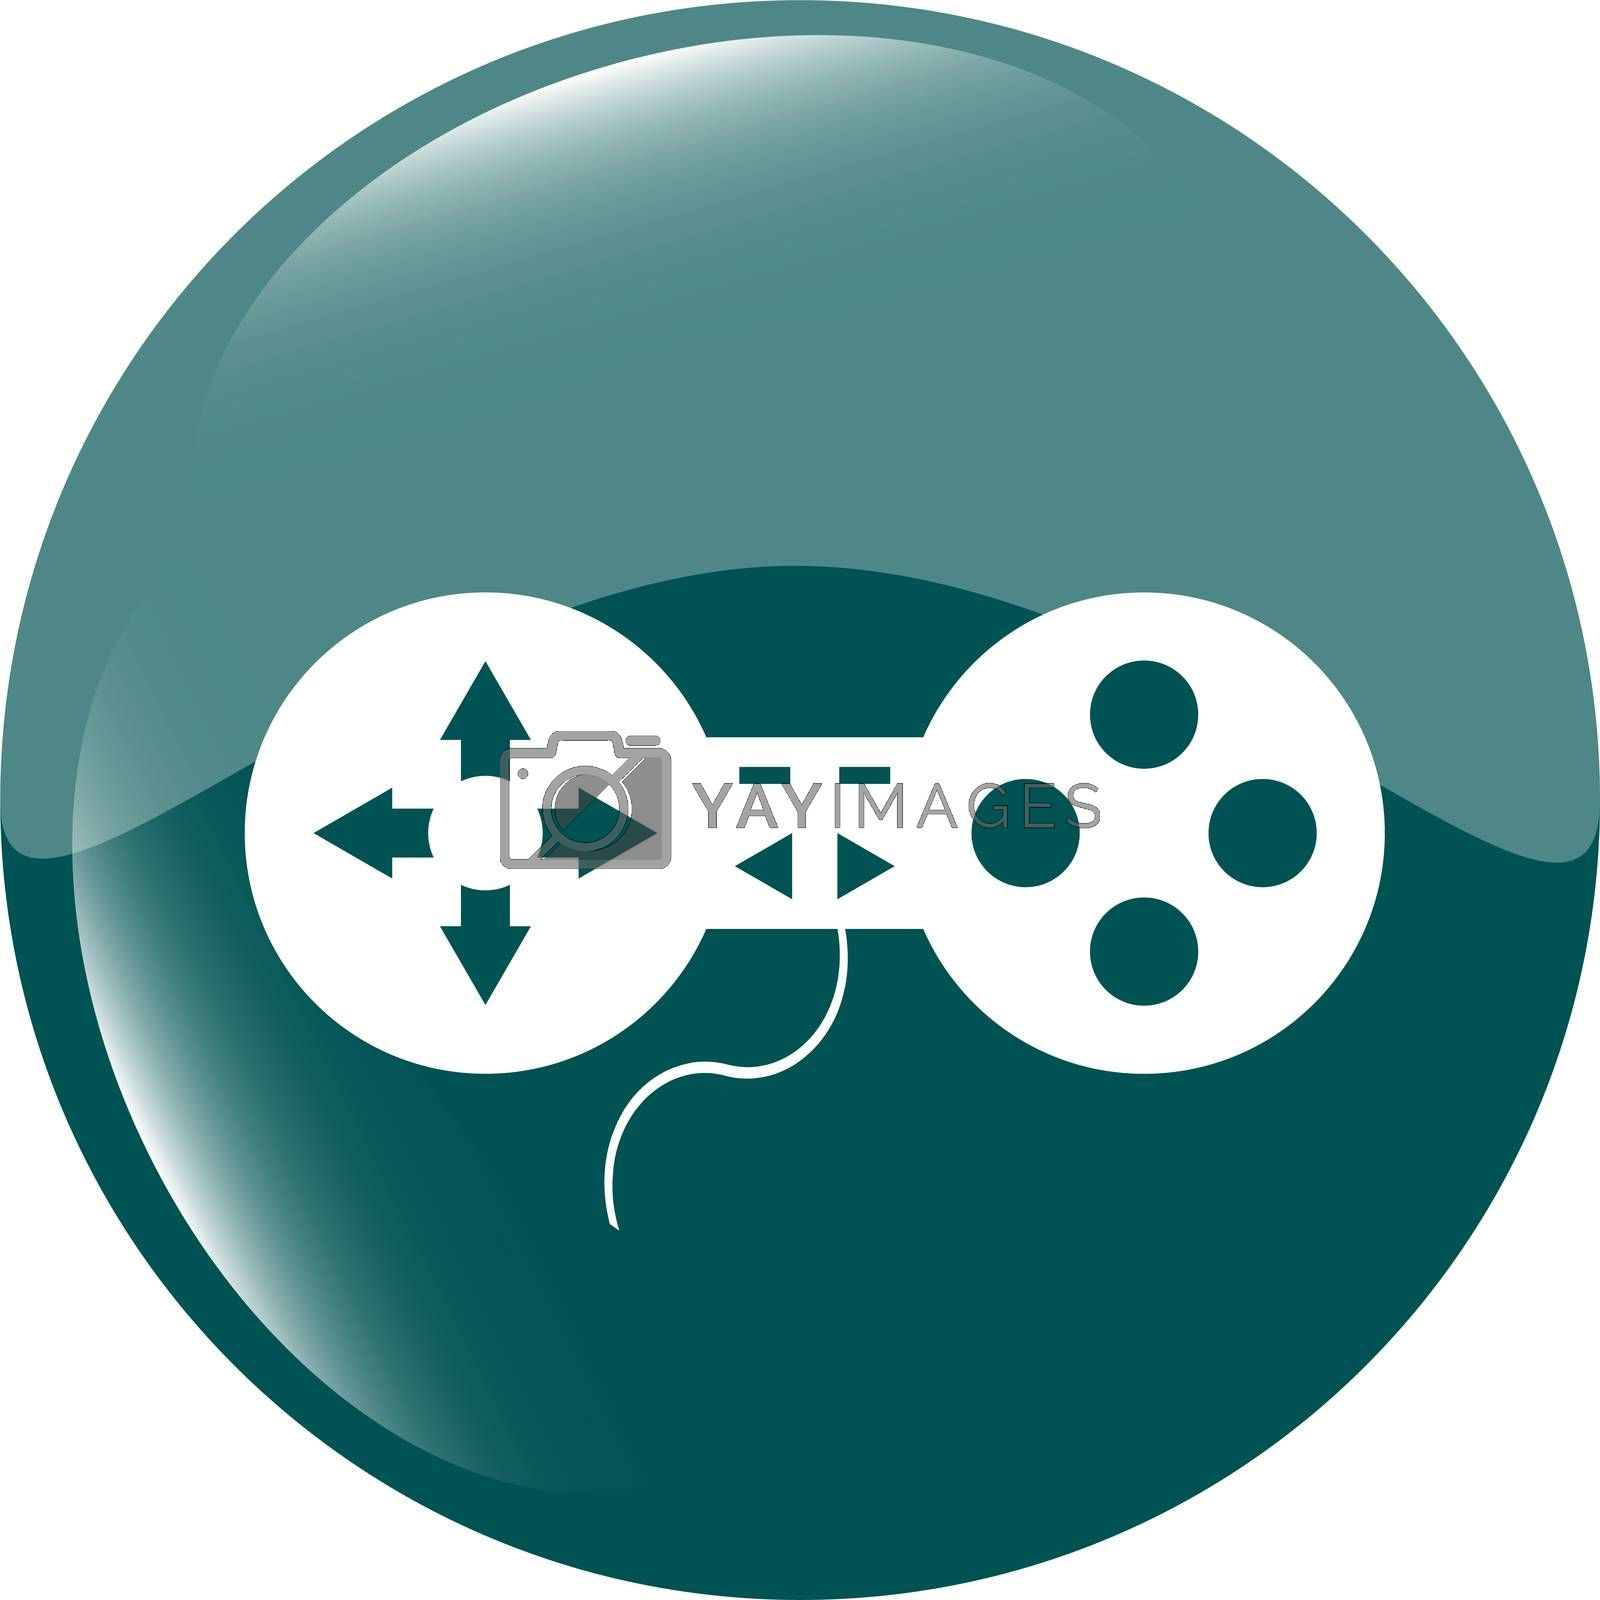 Royalty free image of game controller web icon, button isolated on white by fotoscool